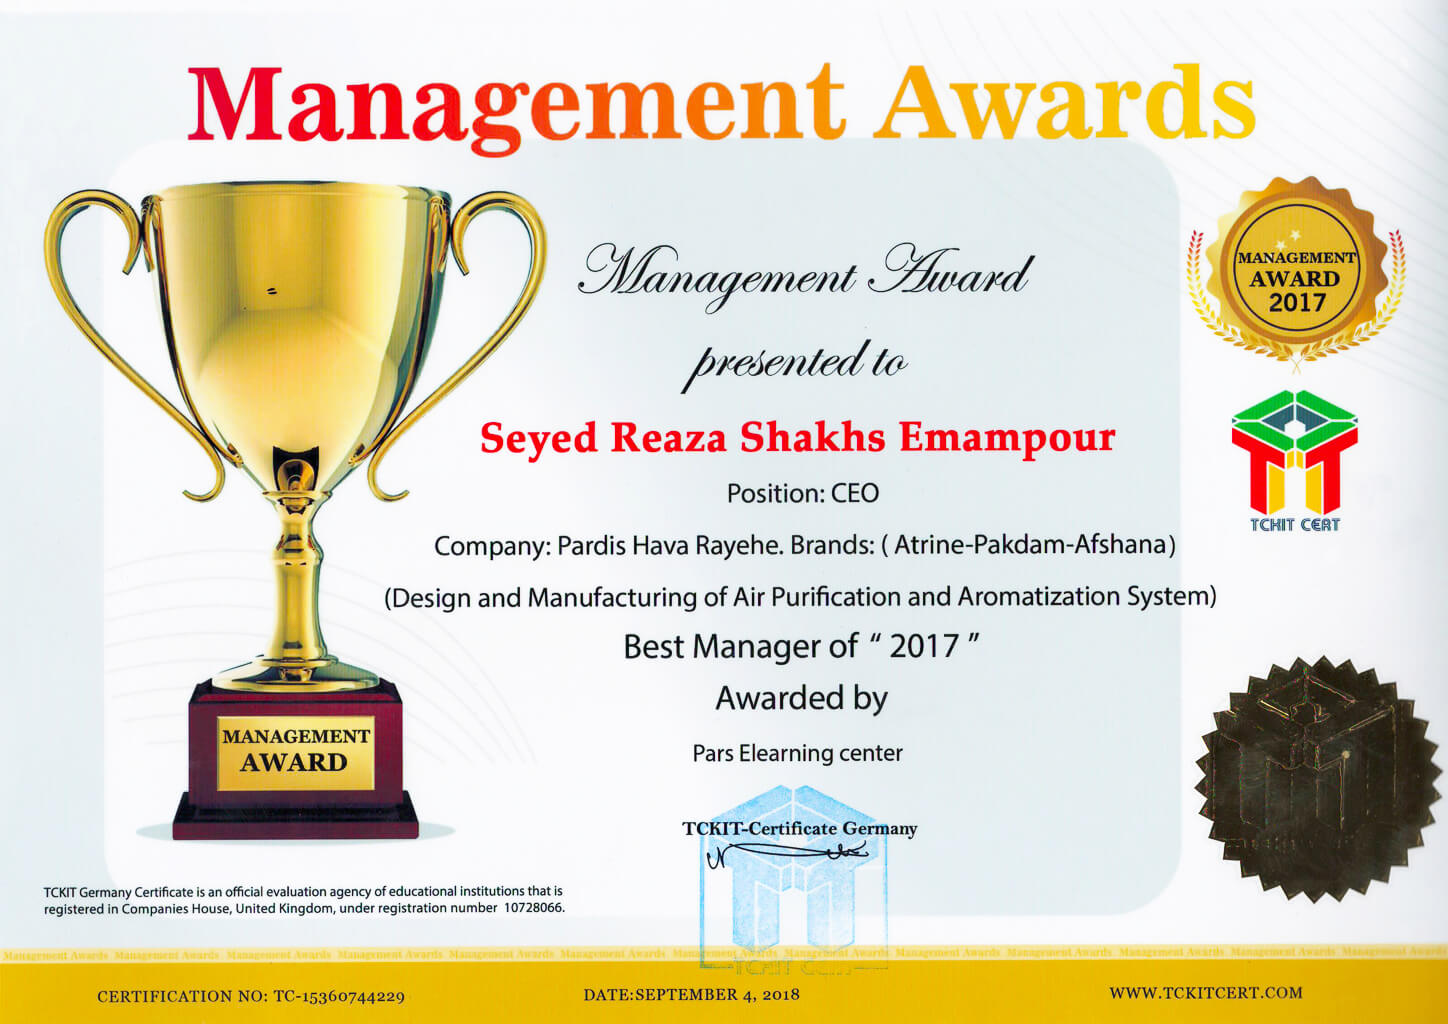 Management Awards 2017